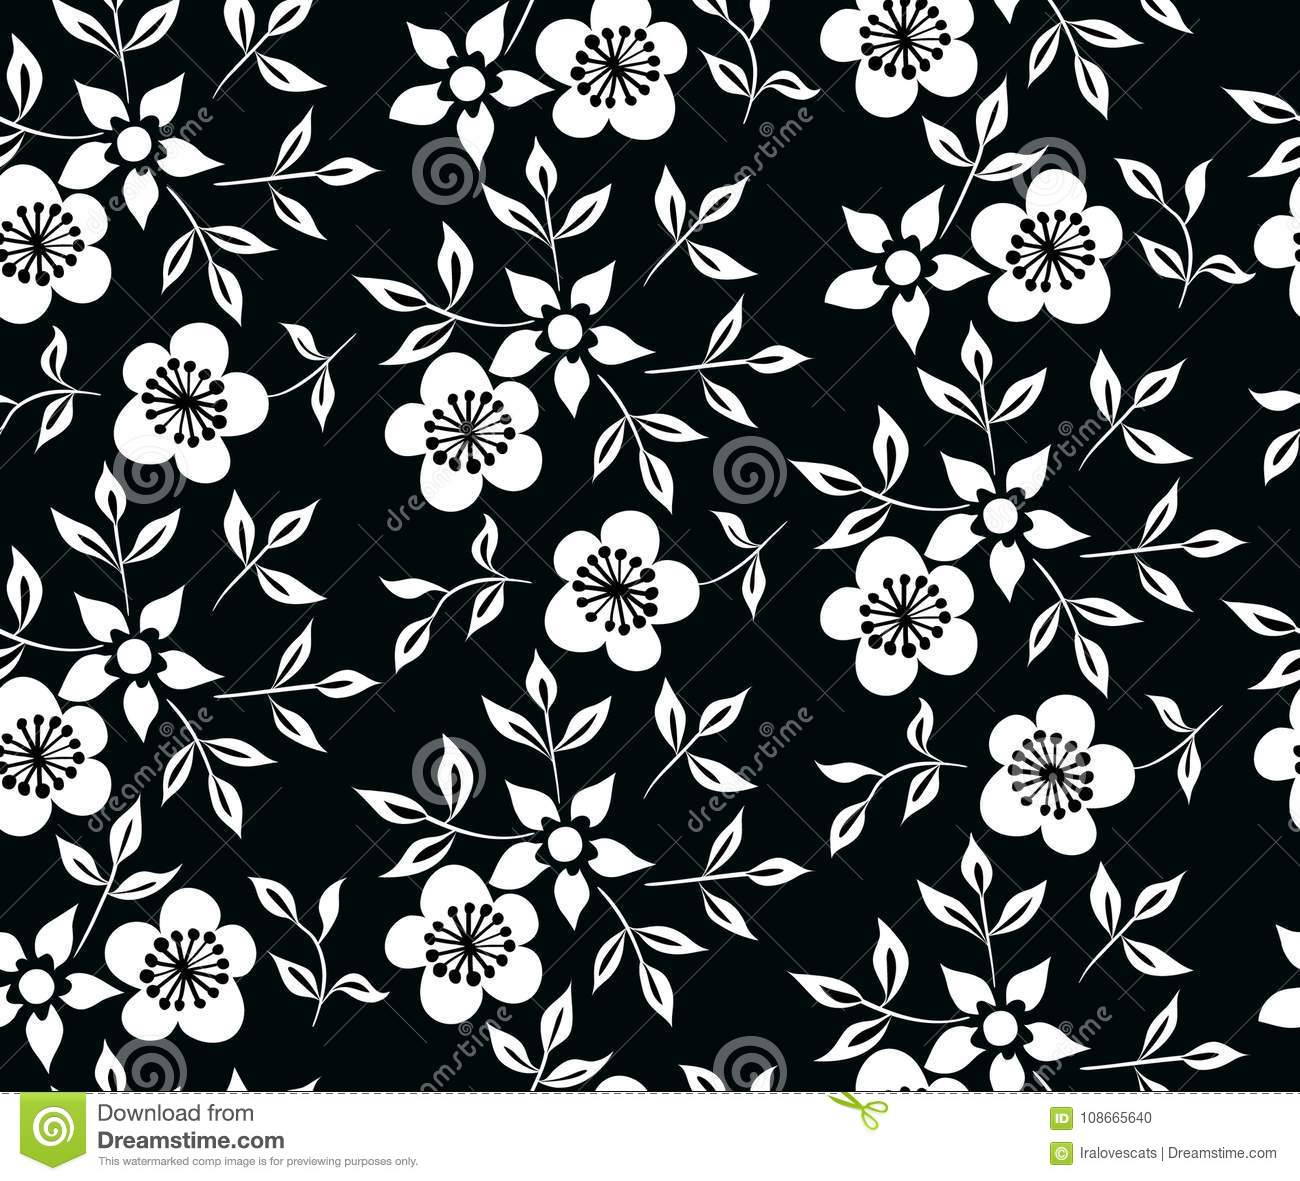 Vector Illustration Of Black And White Flowers And Leafs Ornament